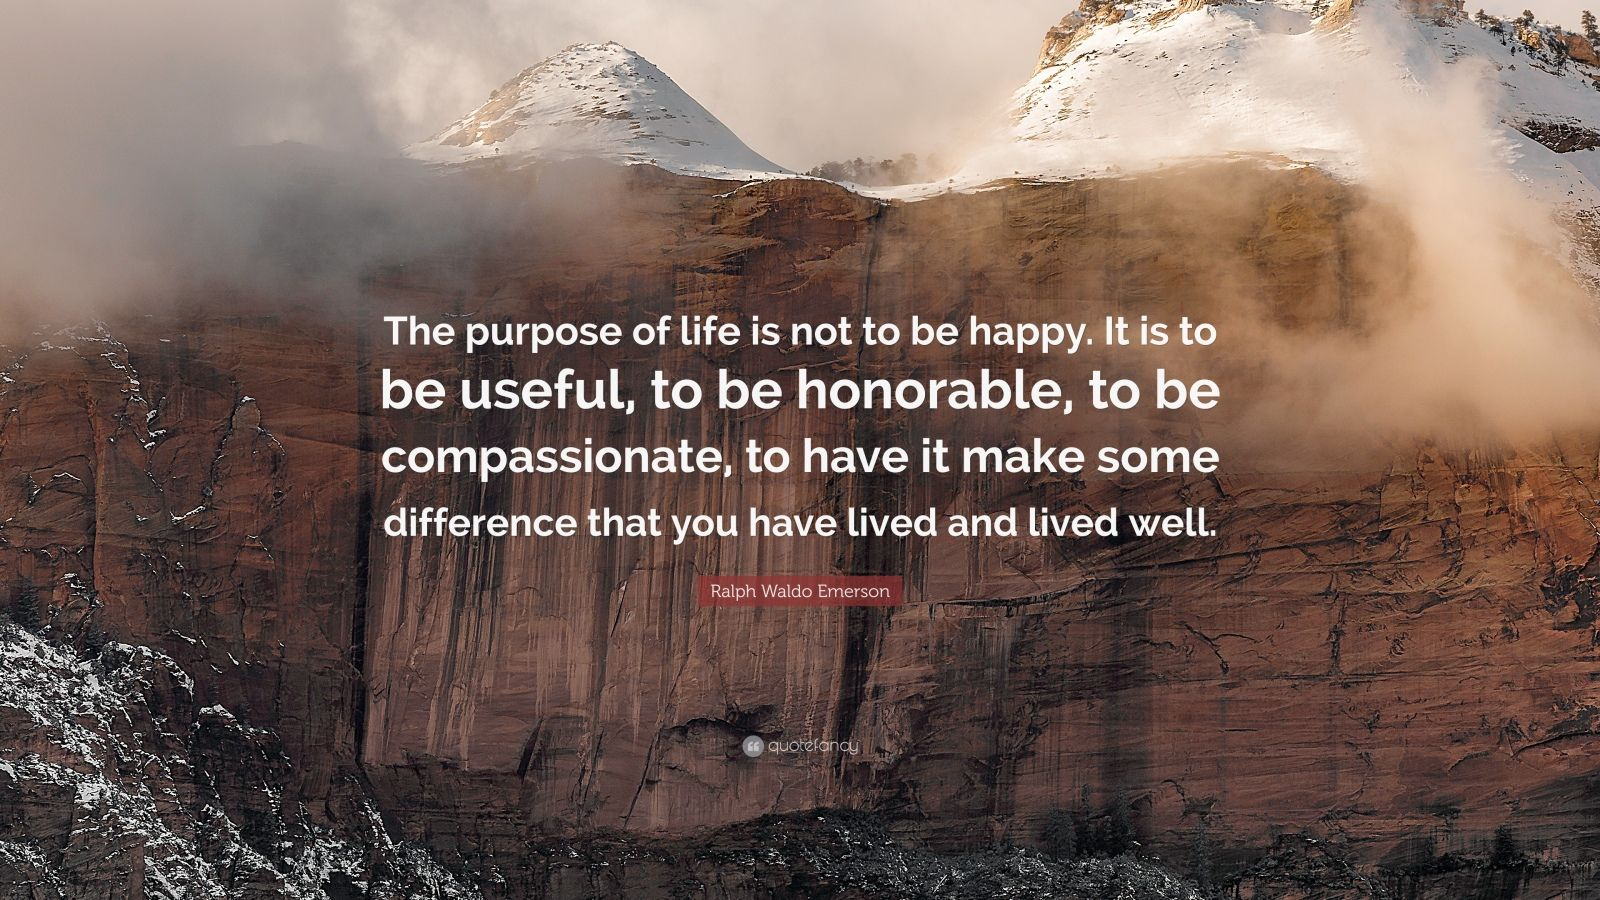 Ralph Waldo Emerson Quote Ldquo The Purpose Of Life Is Not To